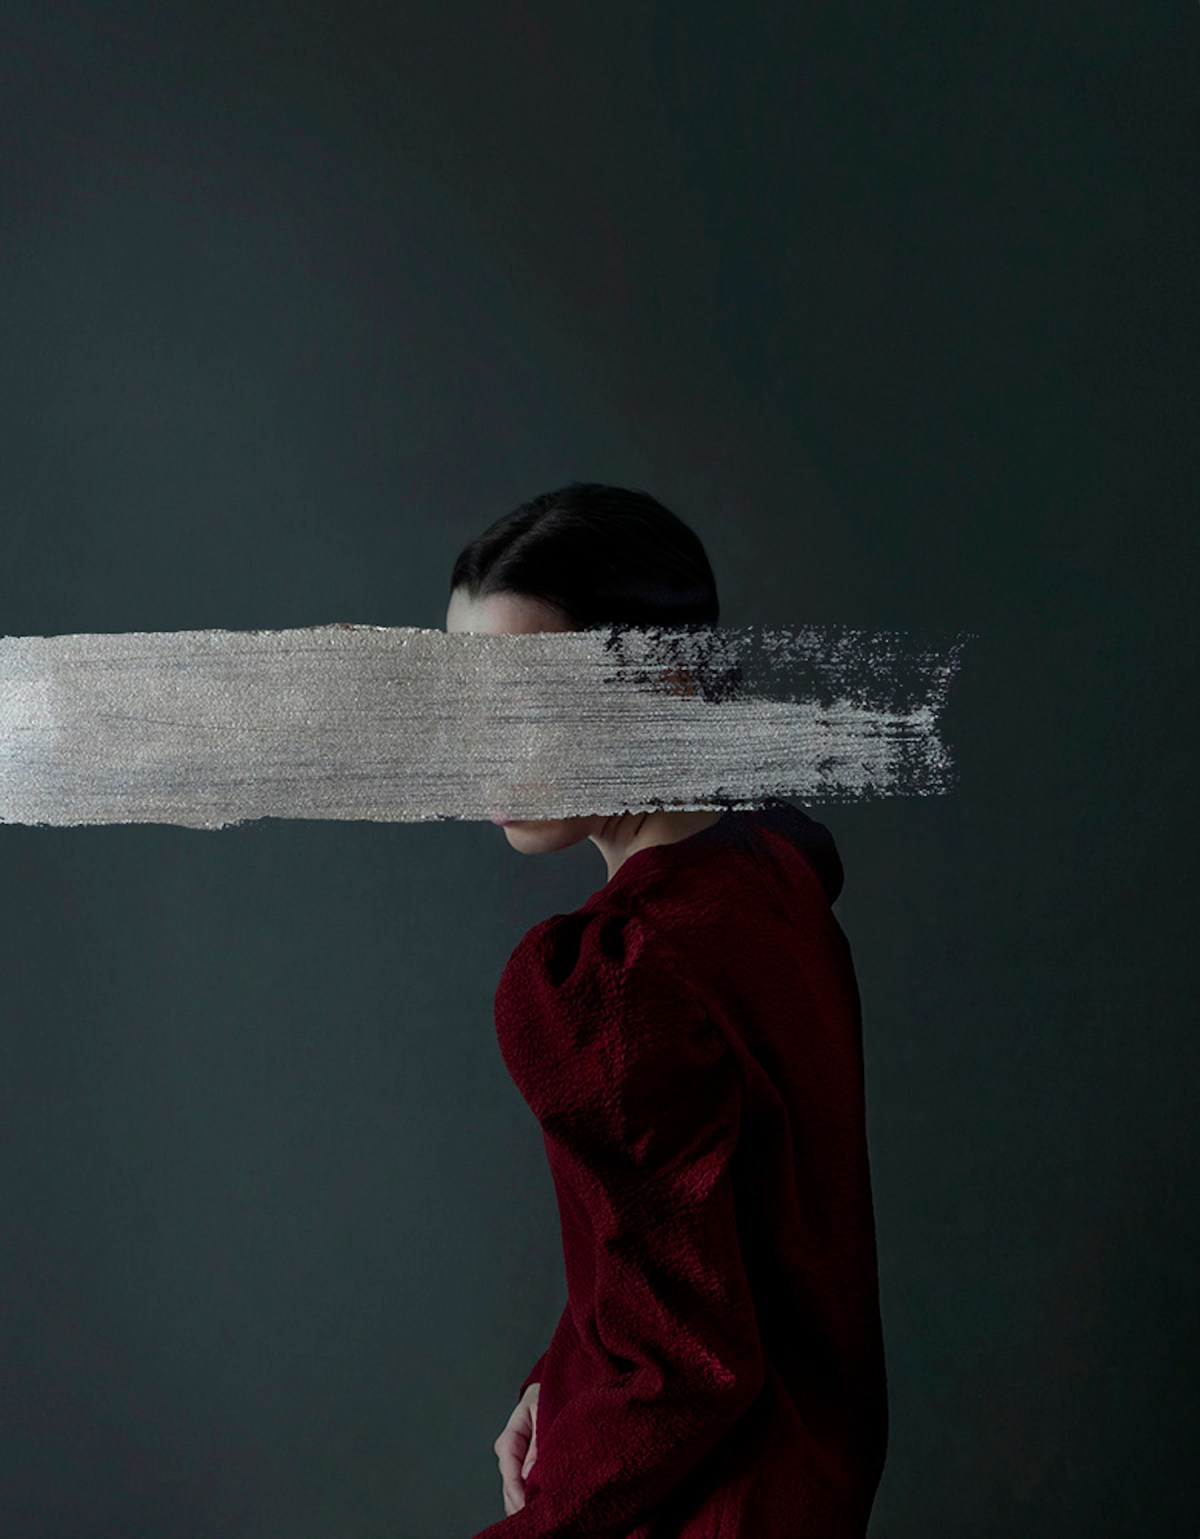 ignant-photography-andrea-torres-balaguer-the-unknown-02